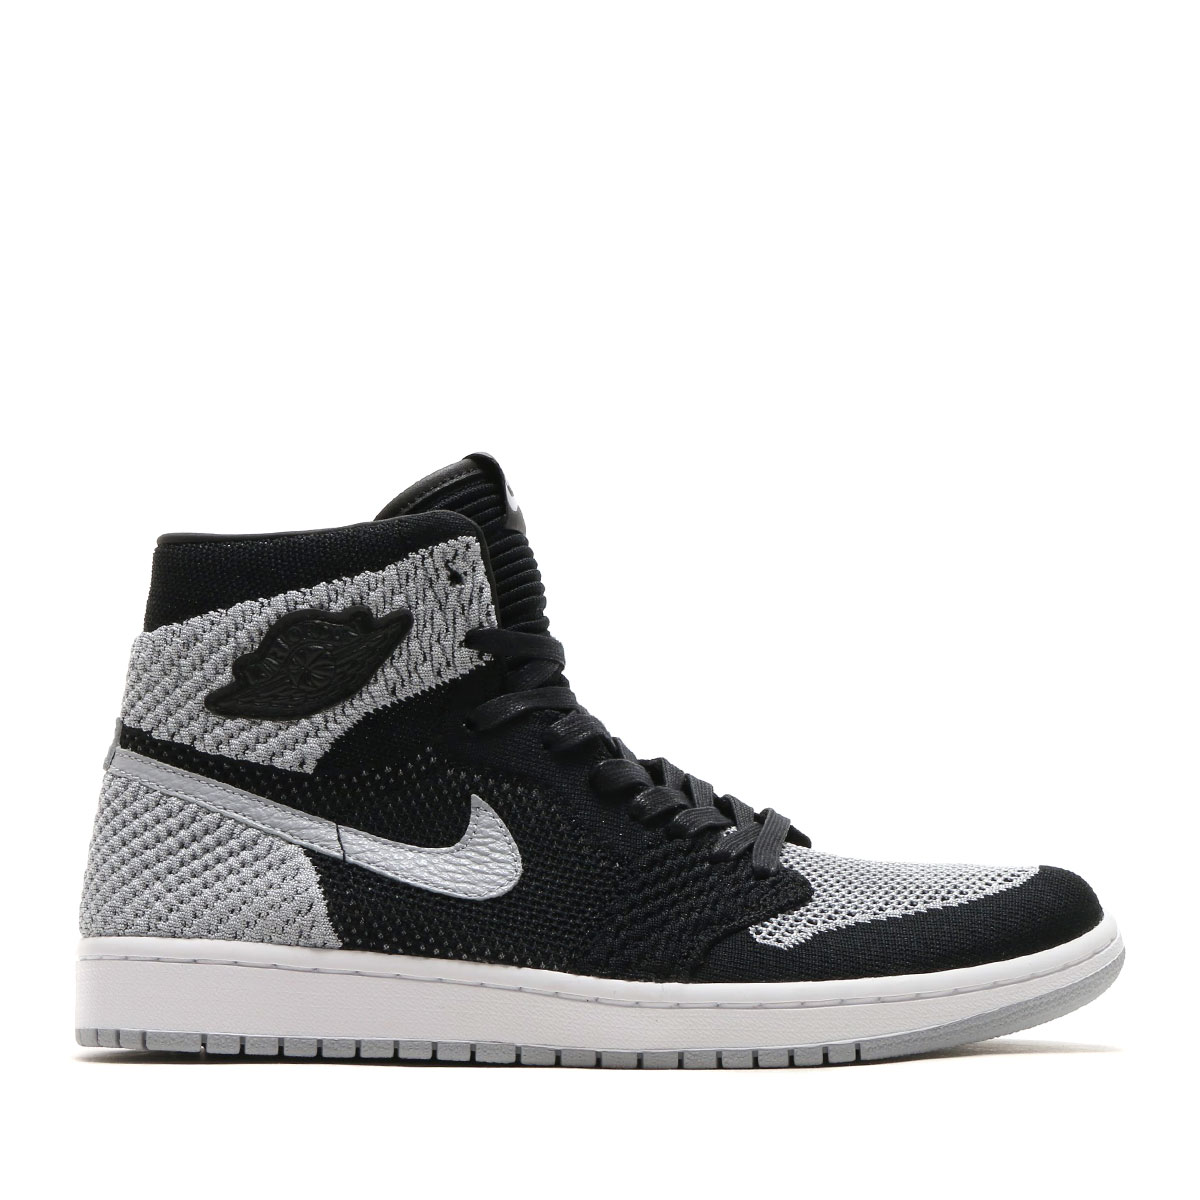 9e4ace4a105aa NIKE AIR JORDAN 1 RETRO HI FLYKNIT (Nike Air Jordan 1 nostalgic high fried  food knit) (BLACK WOLF GREY-WHITE) 18SP-S